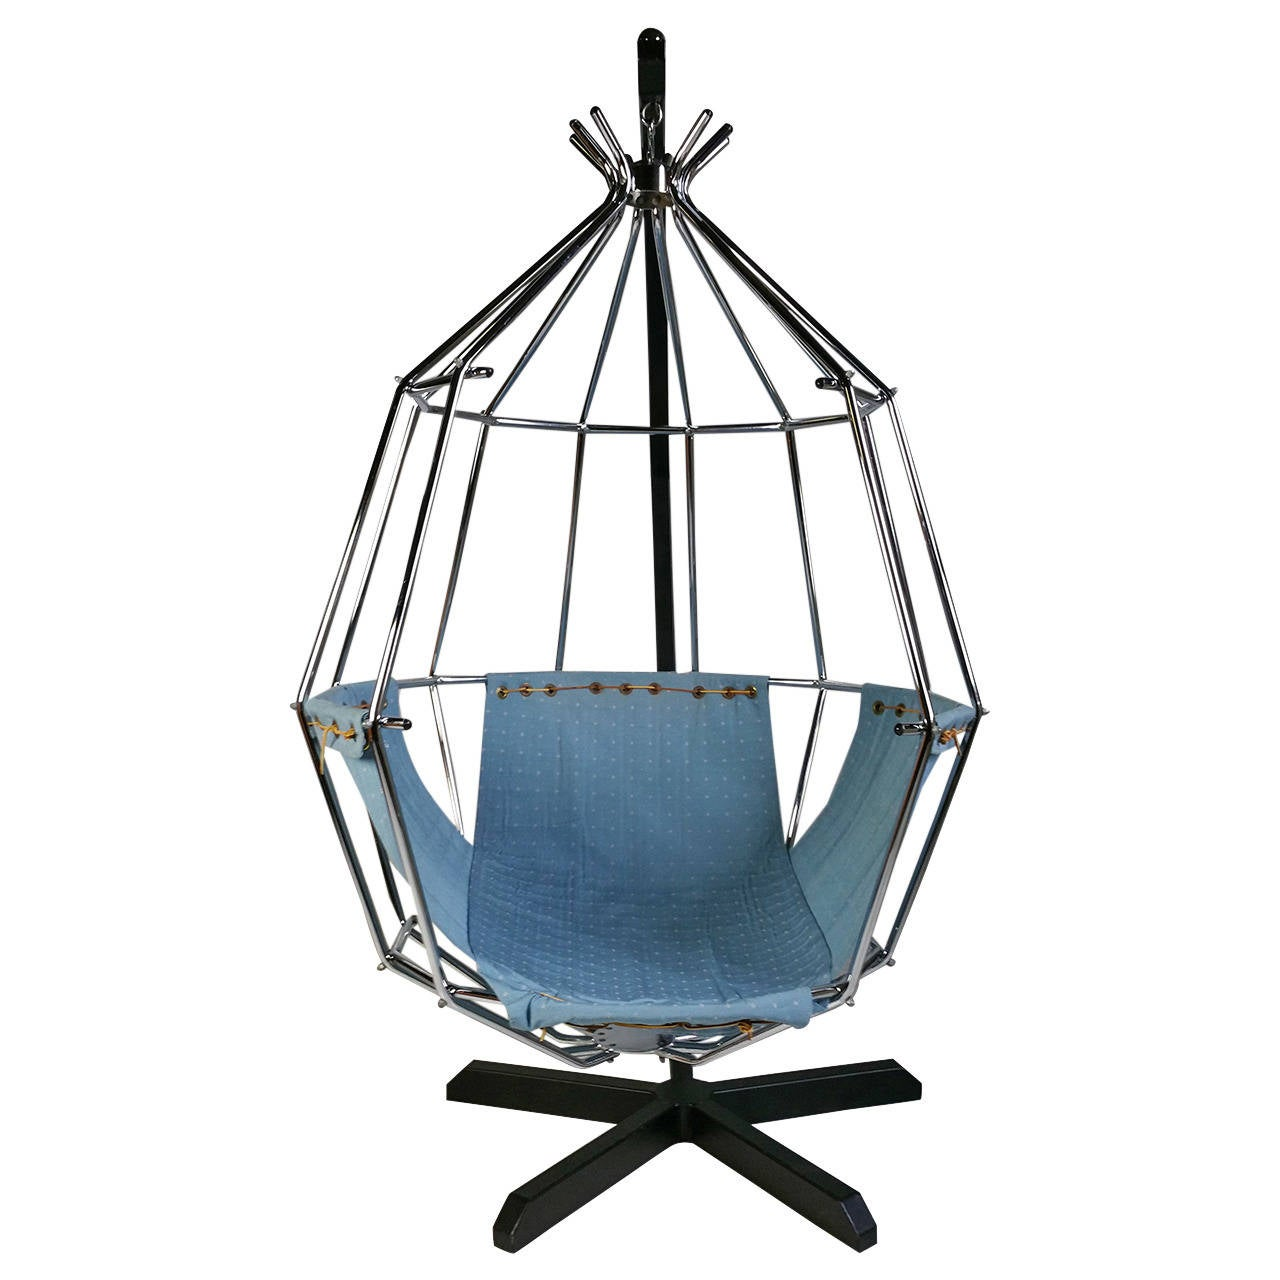 Ib Arberg Hanging Birdcage Chair Or Parrot Circa 1970 For